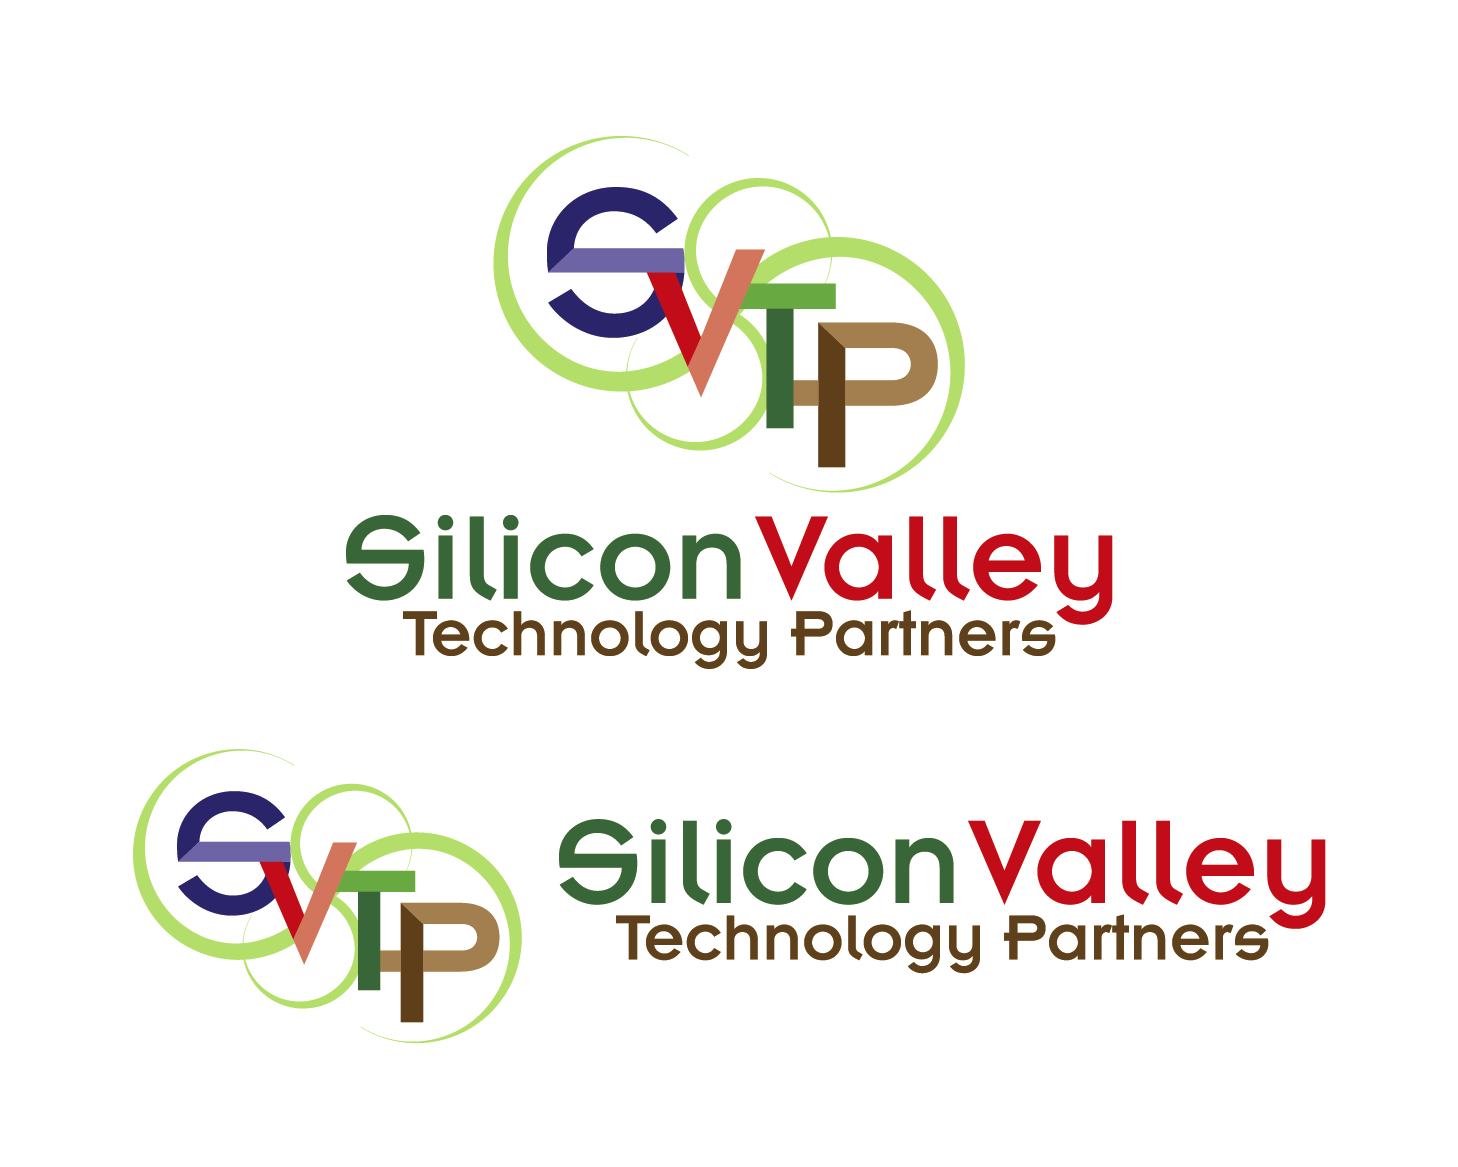 silicon valley technology review essay Intel, a small silicon valley company for which silicon valley is named due to silicon being the most prevalent semiconductor in mos transistors, the most basic component in electronics in an area where miniaturized electronics industry is centered, chose early on in its history to abandon bipolar transistors in favor of mos transistors for its practicality in integrated circuits.